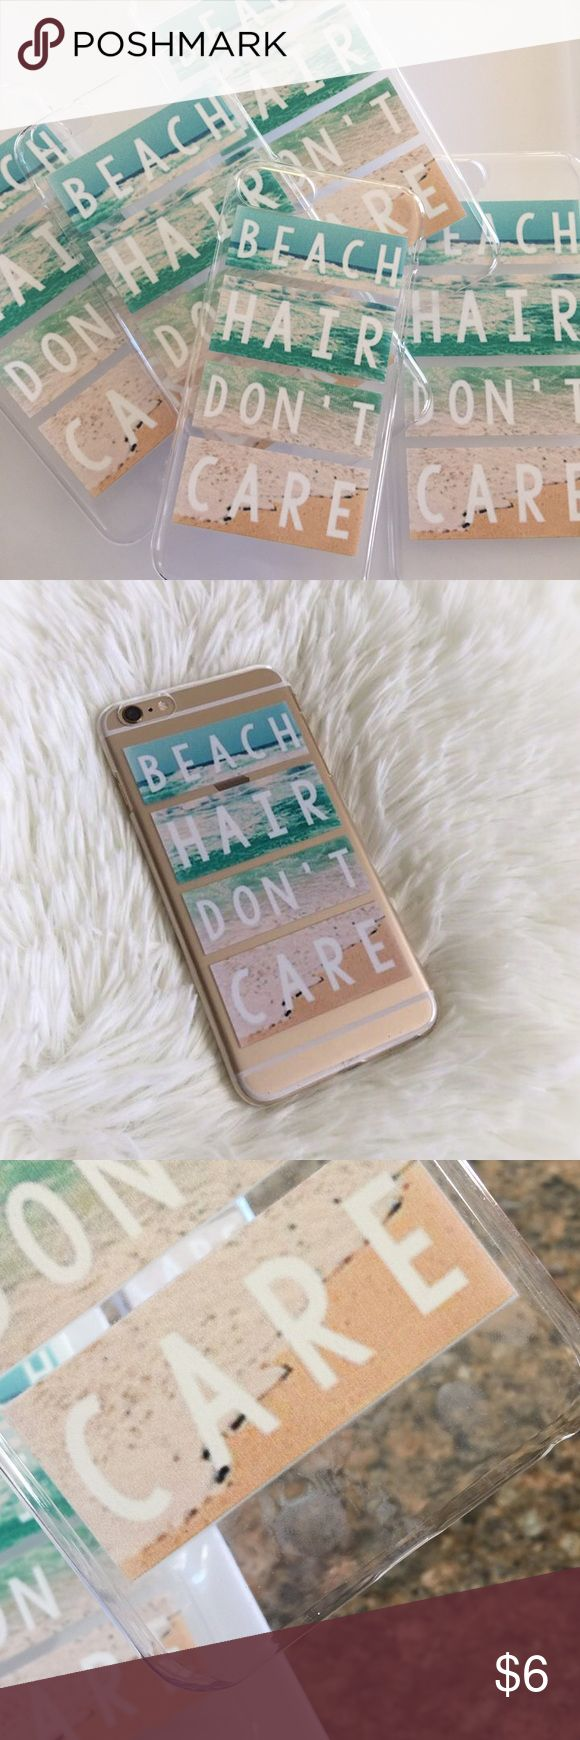 iPhone Case SALE 🌟⚡️💥 ‼️PRICE IS FIRM‼️ Hard plastic cases with minor manufacturers imperfections or fine scratches from poor packaging. See photos for examples of imperfections. For some cases, once on, the marks aren't very visible. ‼️PRICE IS FIRM‼️ Phone cases available below: iPhone 6 or 6S, iPhone 6 or 6S Plus, and iPhone 7 Plus. Accessories Phone Cases